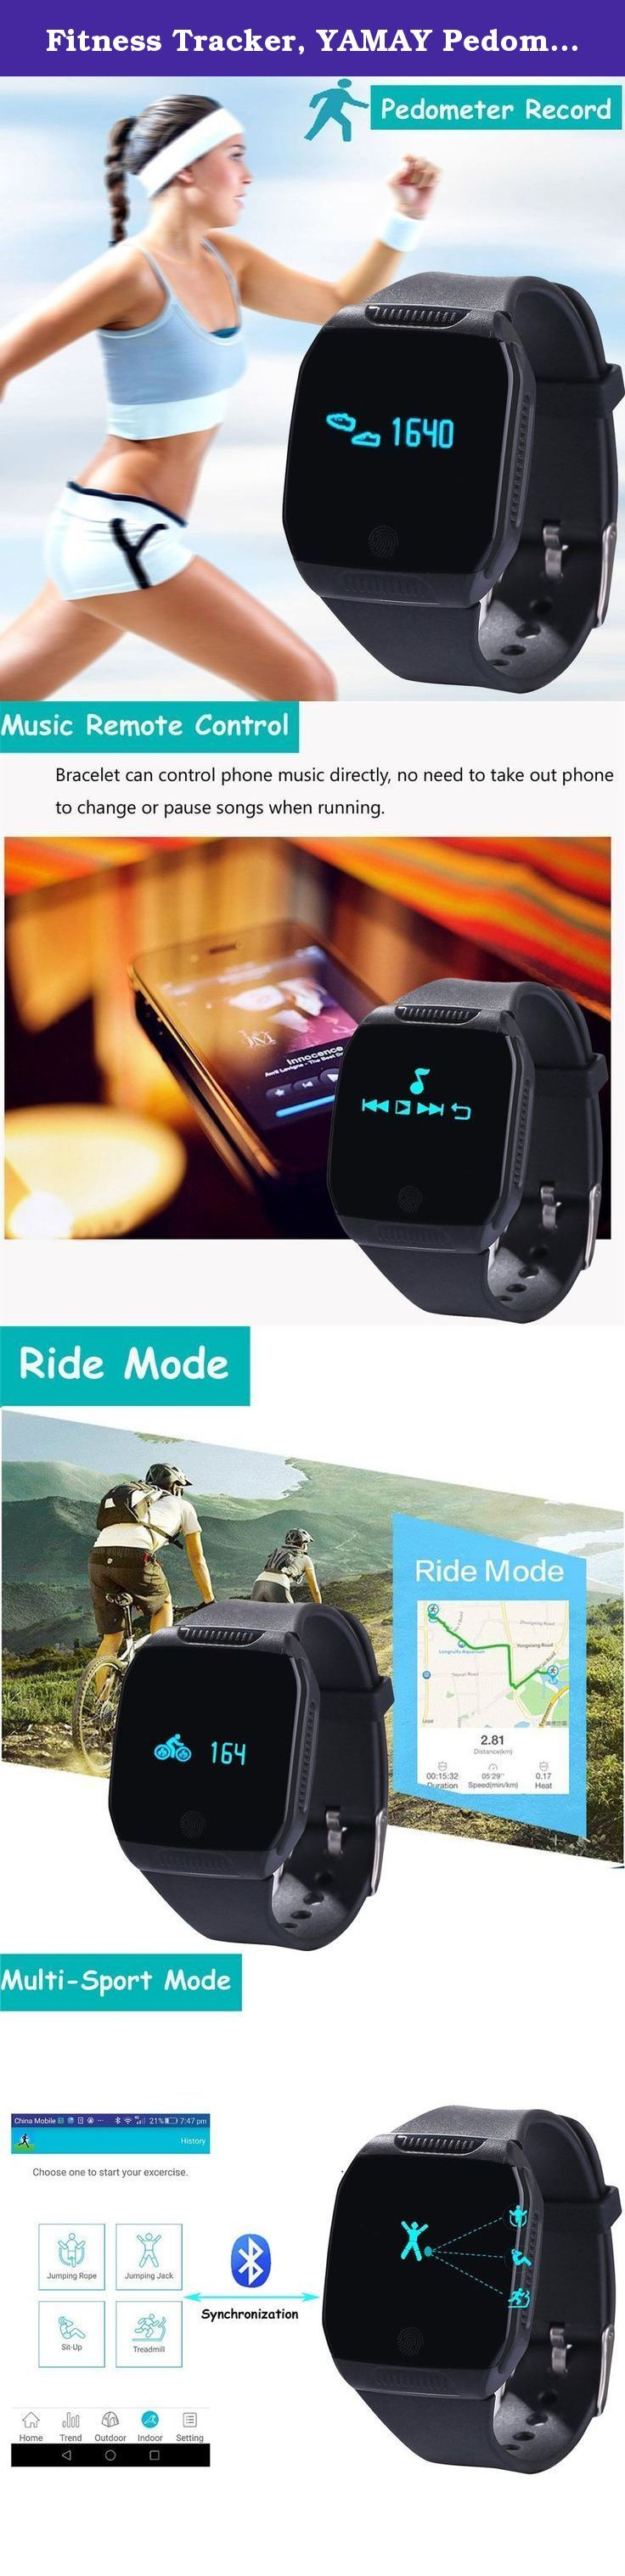 Fitness Tracker, YAMAY Pedometer Watch Band Waterproof for Android iPhone Women Men Activity Tracker Calories Burned Distance Alarm Sleep Monitor Text Notification for Bike Swimming Running Black. Feature * Touch key and turn wrist operated, wristband and body can be detached. * Function: Pedometer/Kilometer/Calorie record, Riding Record, Swimming record, Skip rope Record, Jumping Jack Record, Sit-up Record, Treadmill Record, Sleep Monitor, Music Remote Control, Camera & Video Remote…